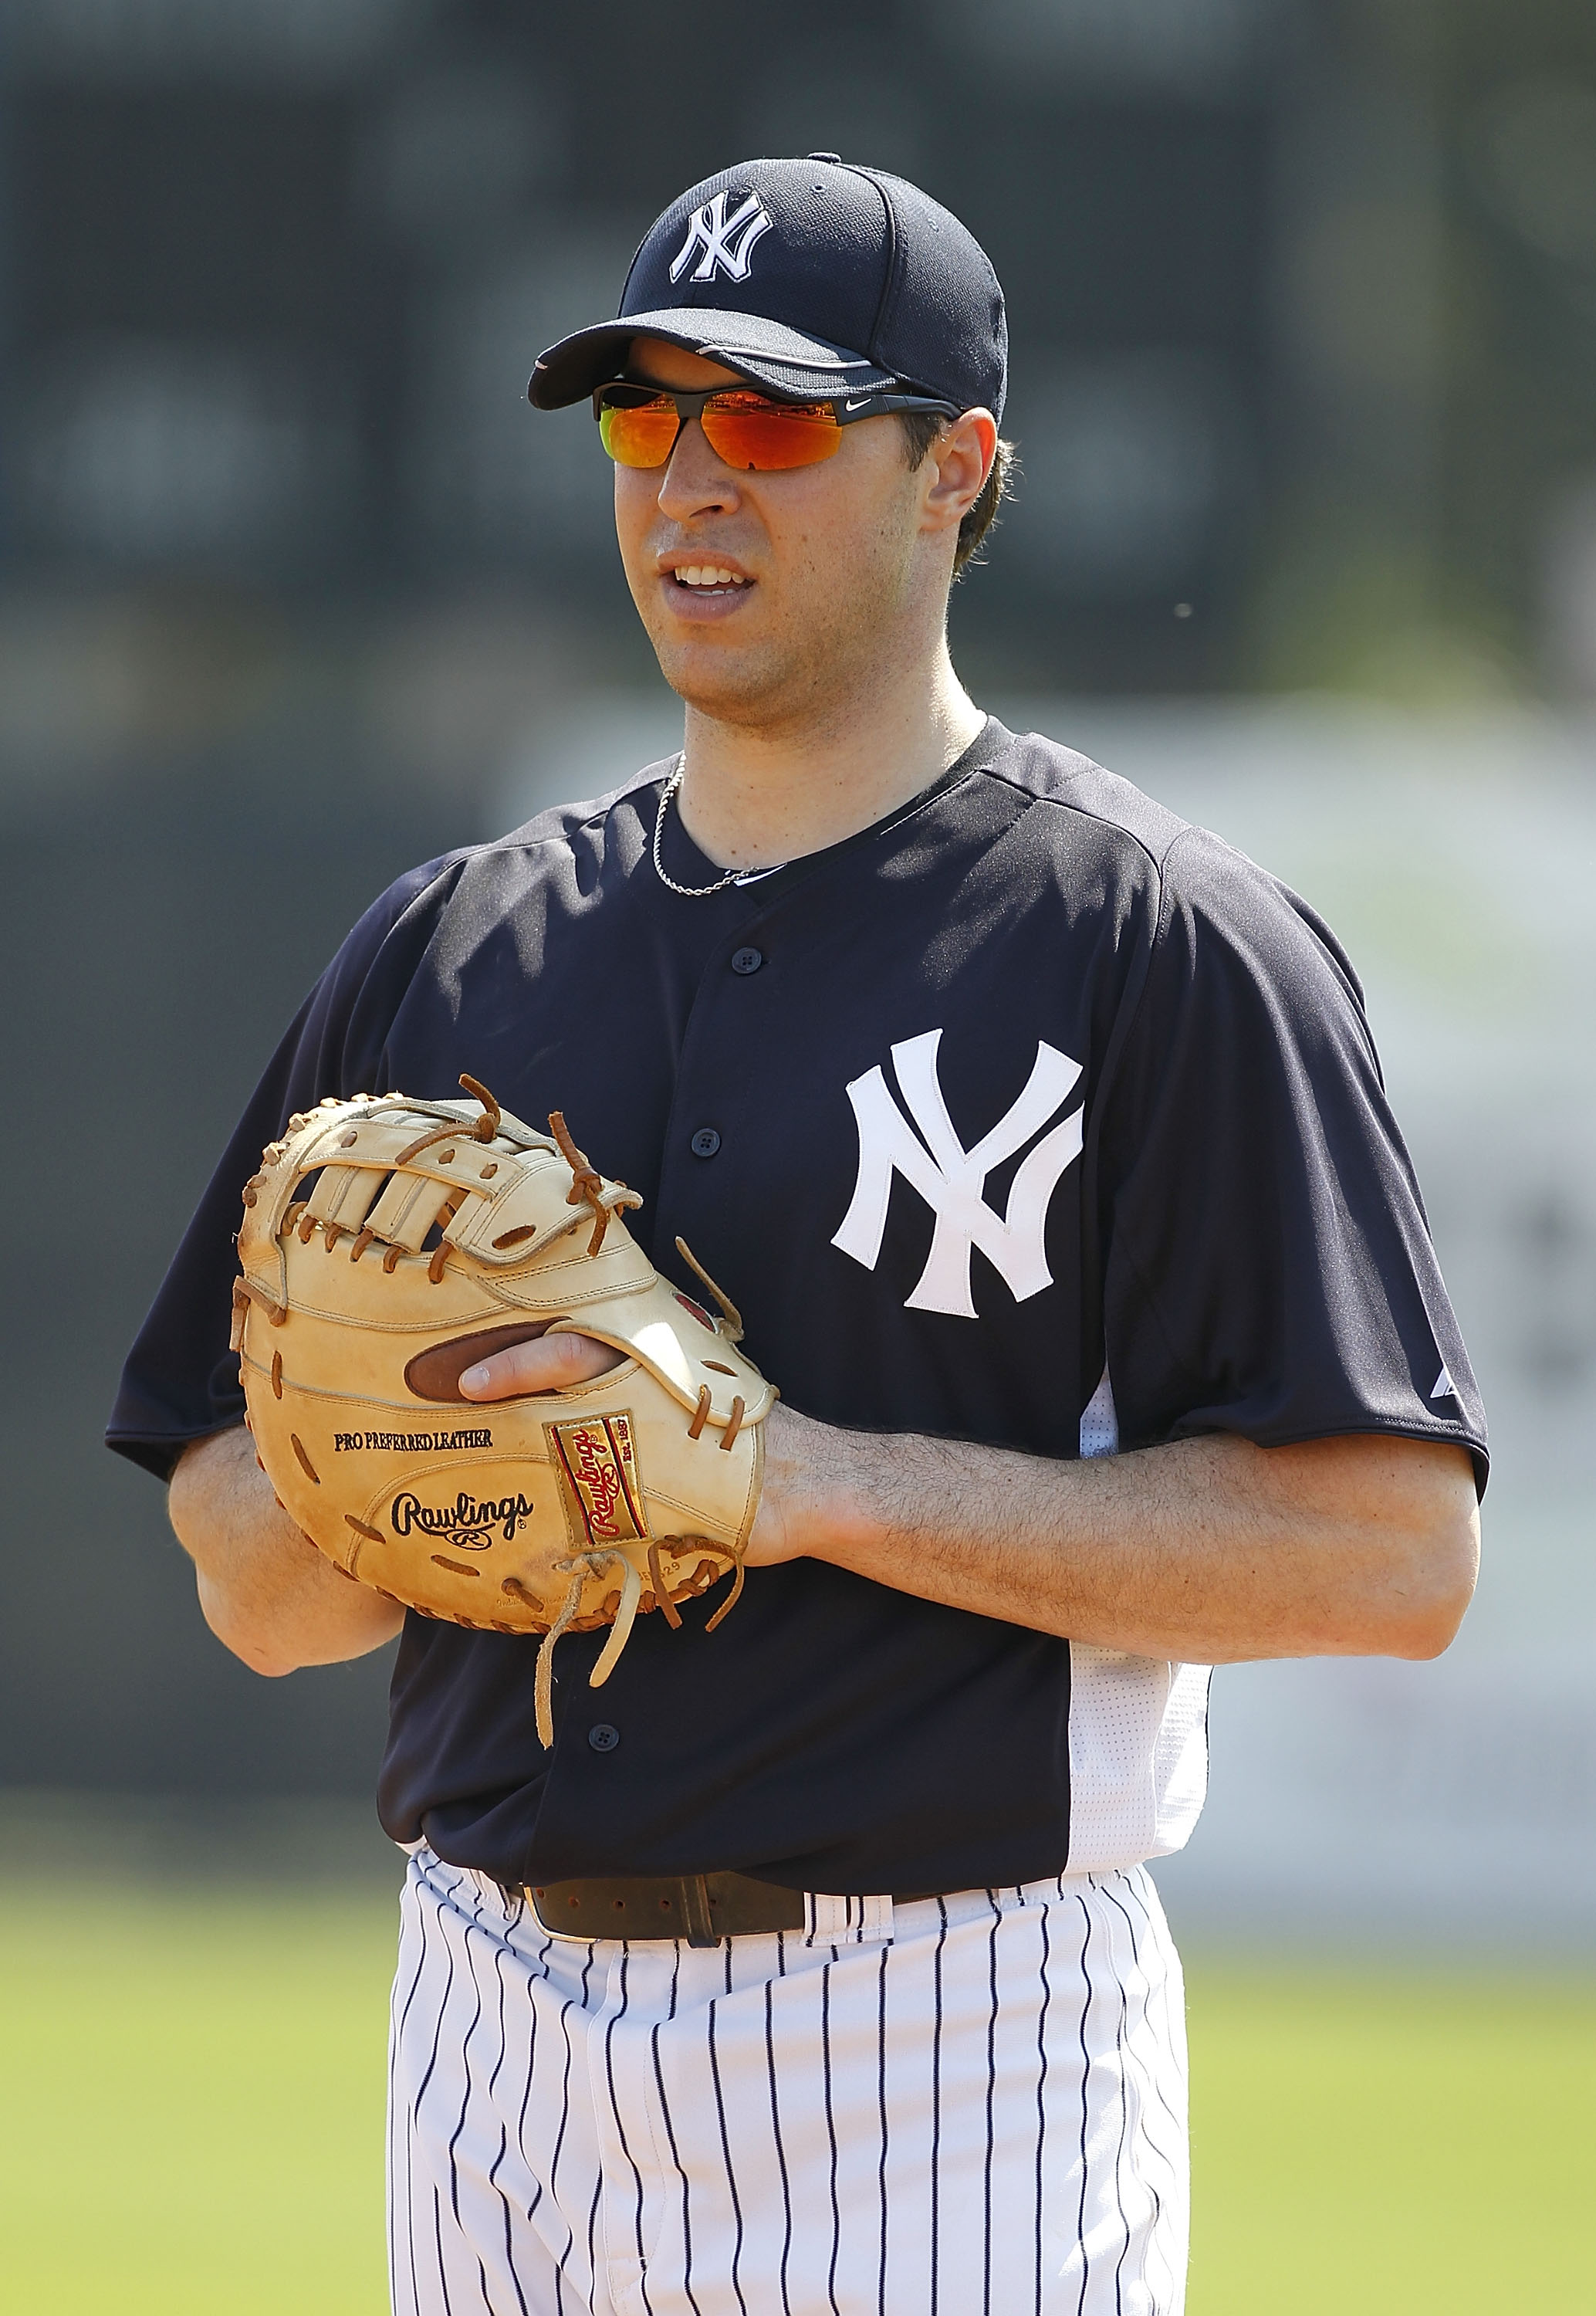 TAMPA, FL - FEBRUARY 20:  Mark Teixeira #25 of the New York Yankees fields ground balls during the first full team workout of Spring Training on February 20, 2011 at the George M. Steinbrenner Field in Tampa, Florida.  (Photo by Leon Halip/Getty Images)